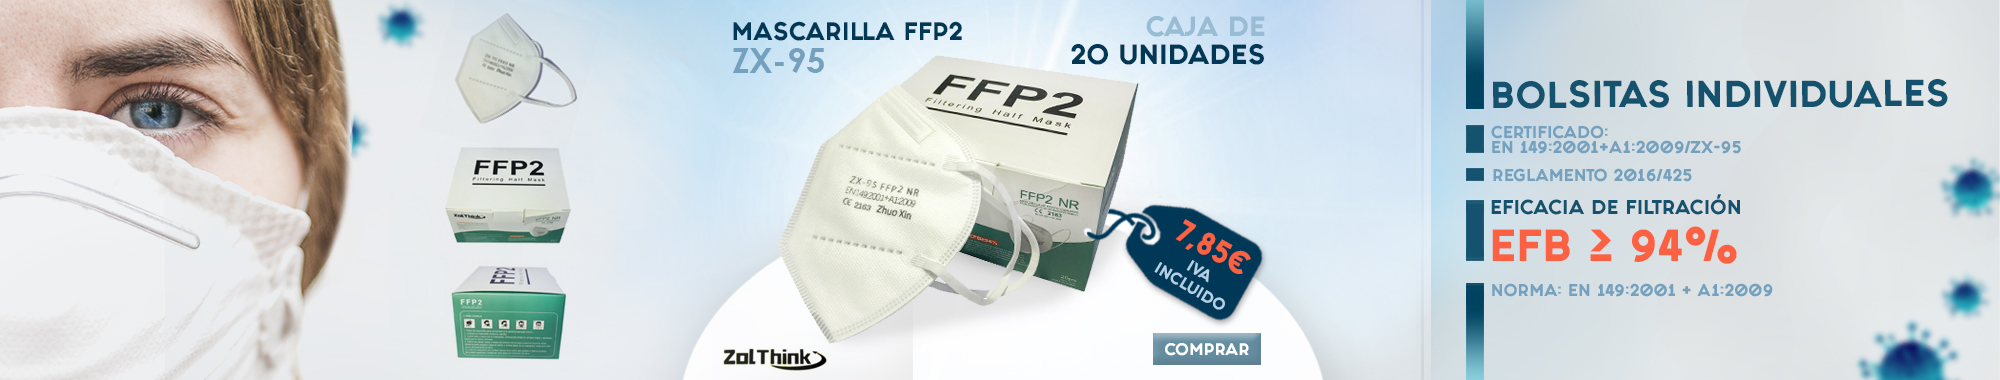 Mascarilla FFP2 Zol Think